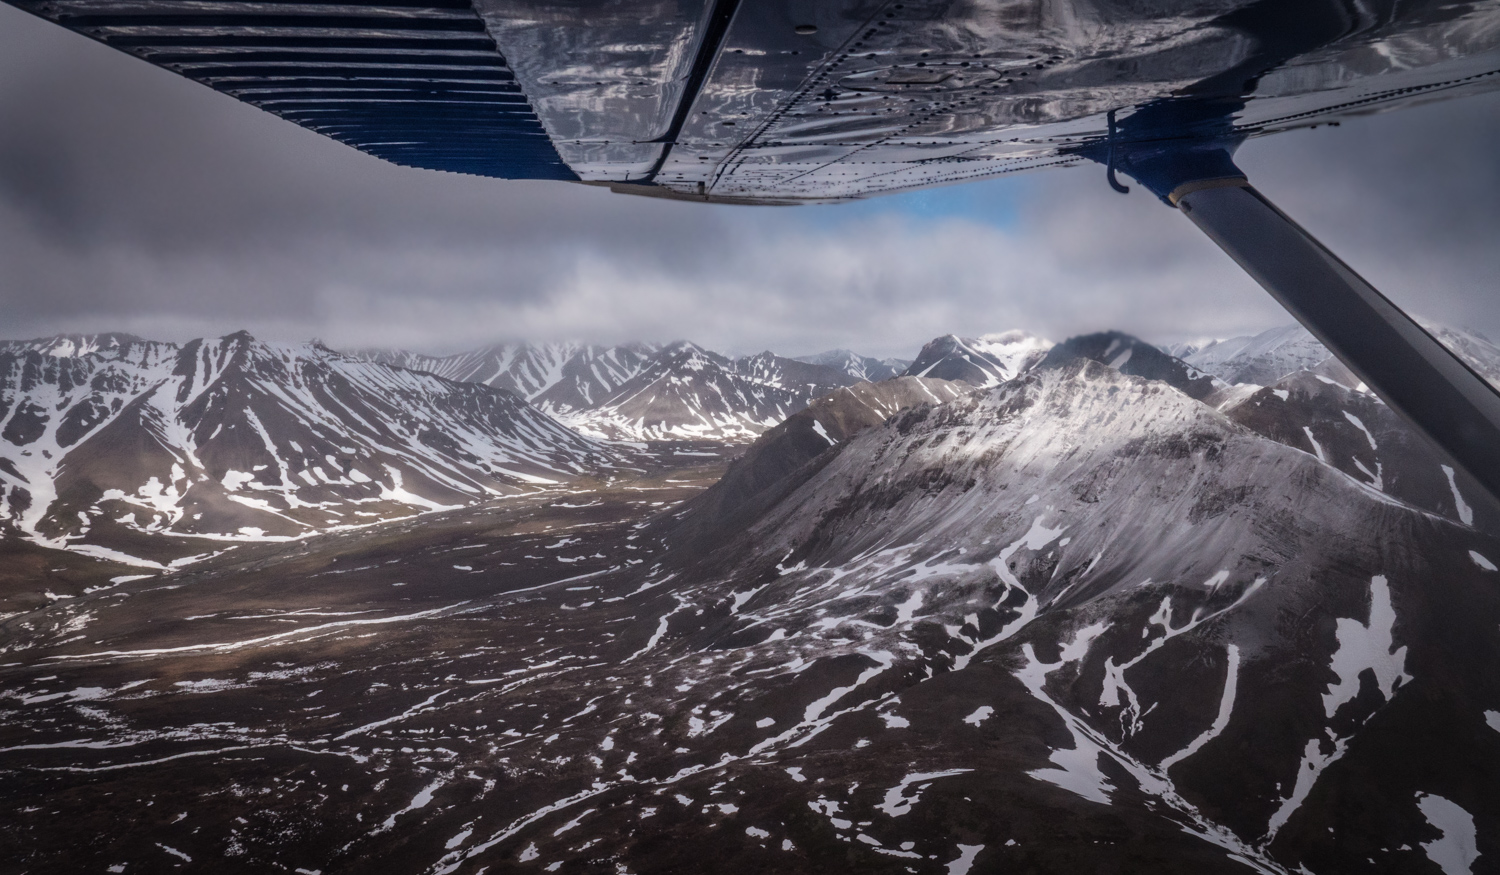 cloudy view of mountains from a small plane - Five (More) Uncomfortable Truths About Photography